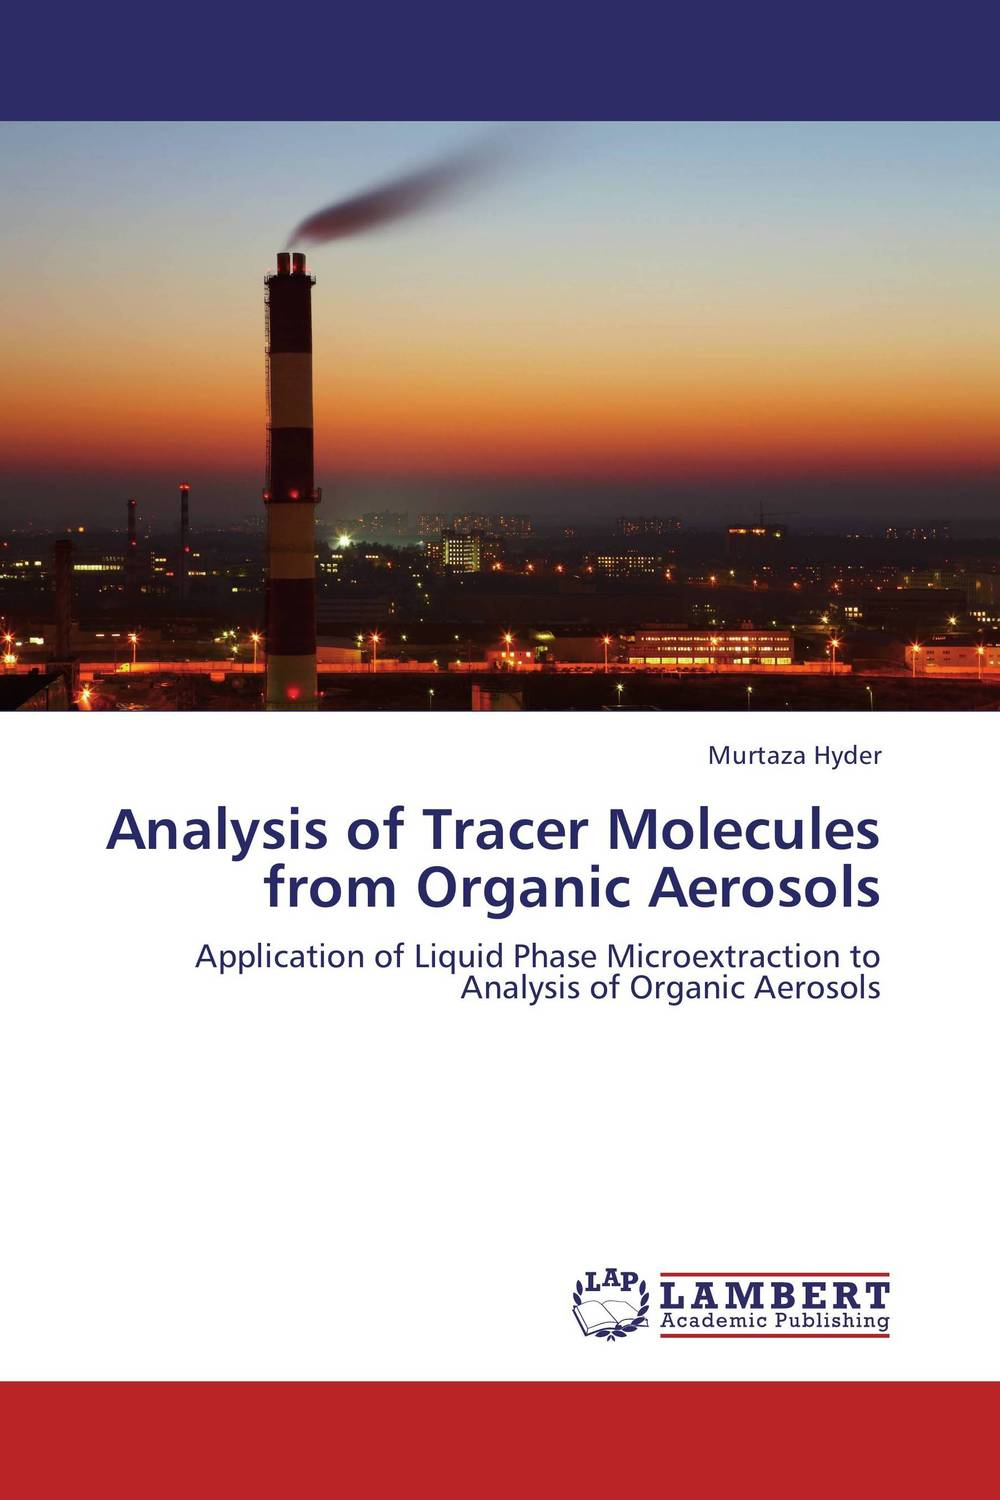 Analysis of Tracer Molecules from Organic Aerosols seeing things as they are